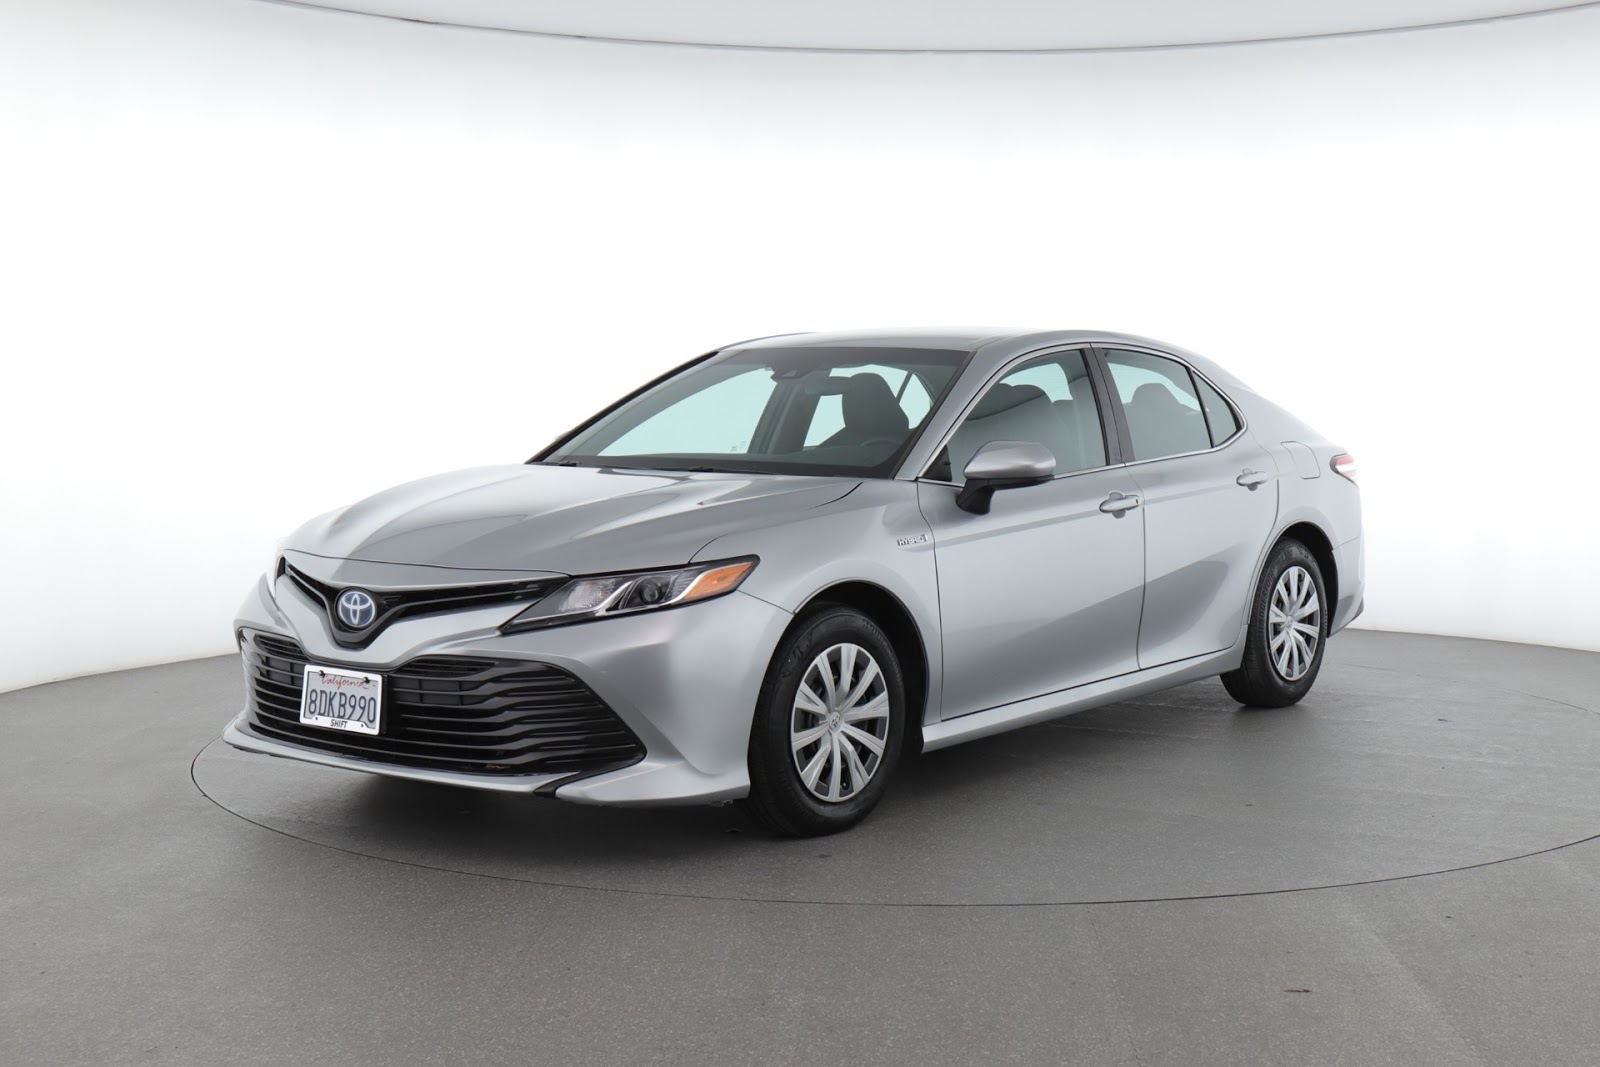 2018 Toyota Camry Hybrid LE (from $24,950)